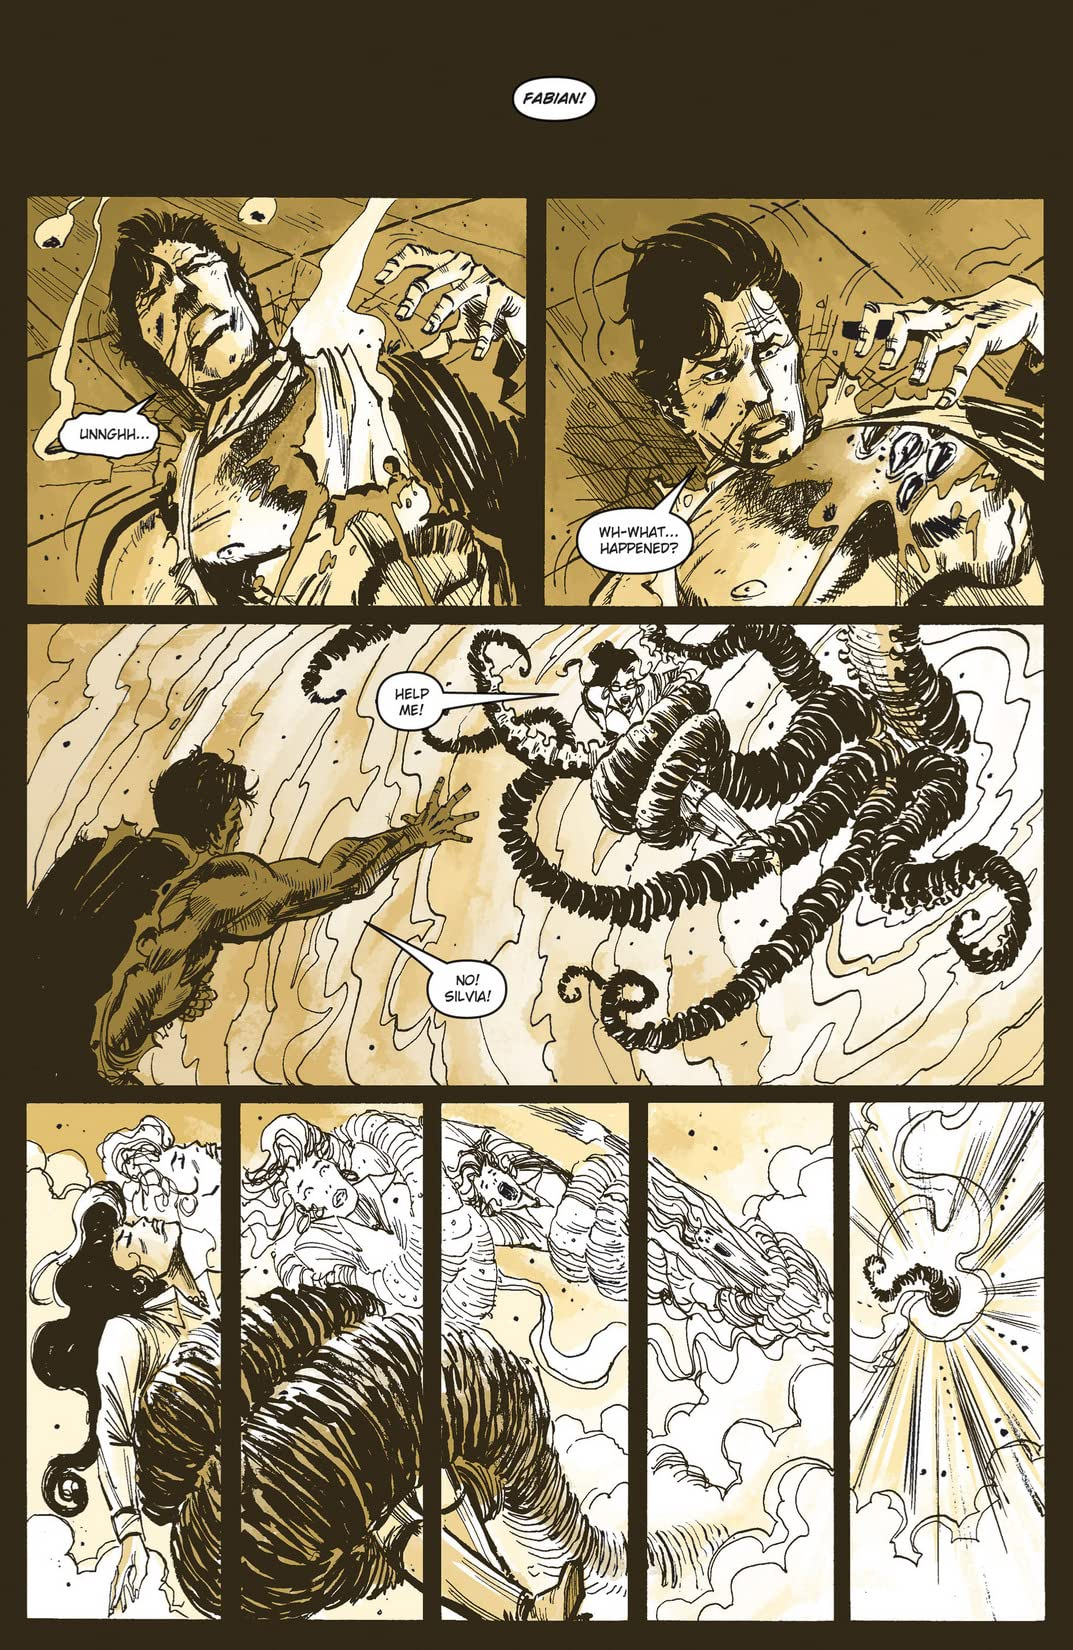 Five Ghosts #5